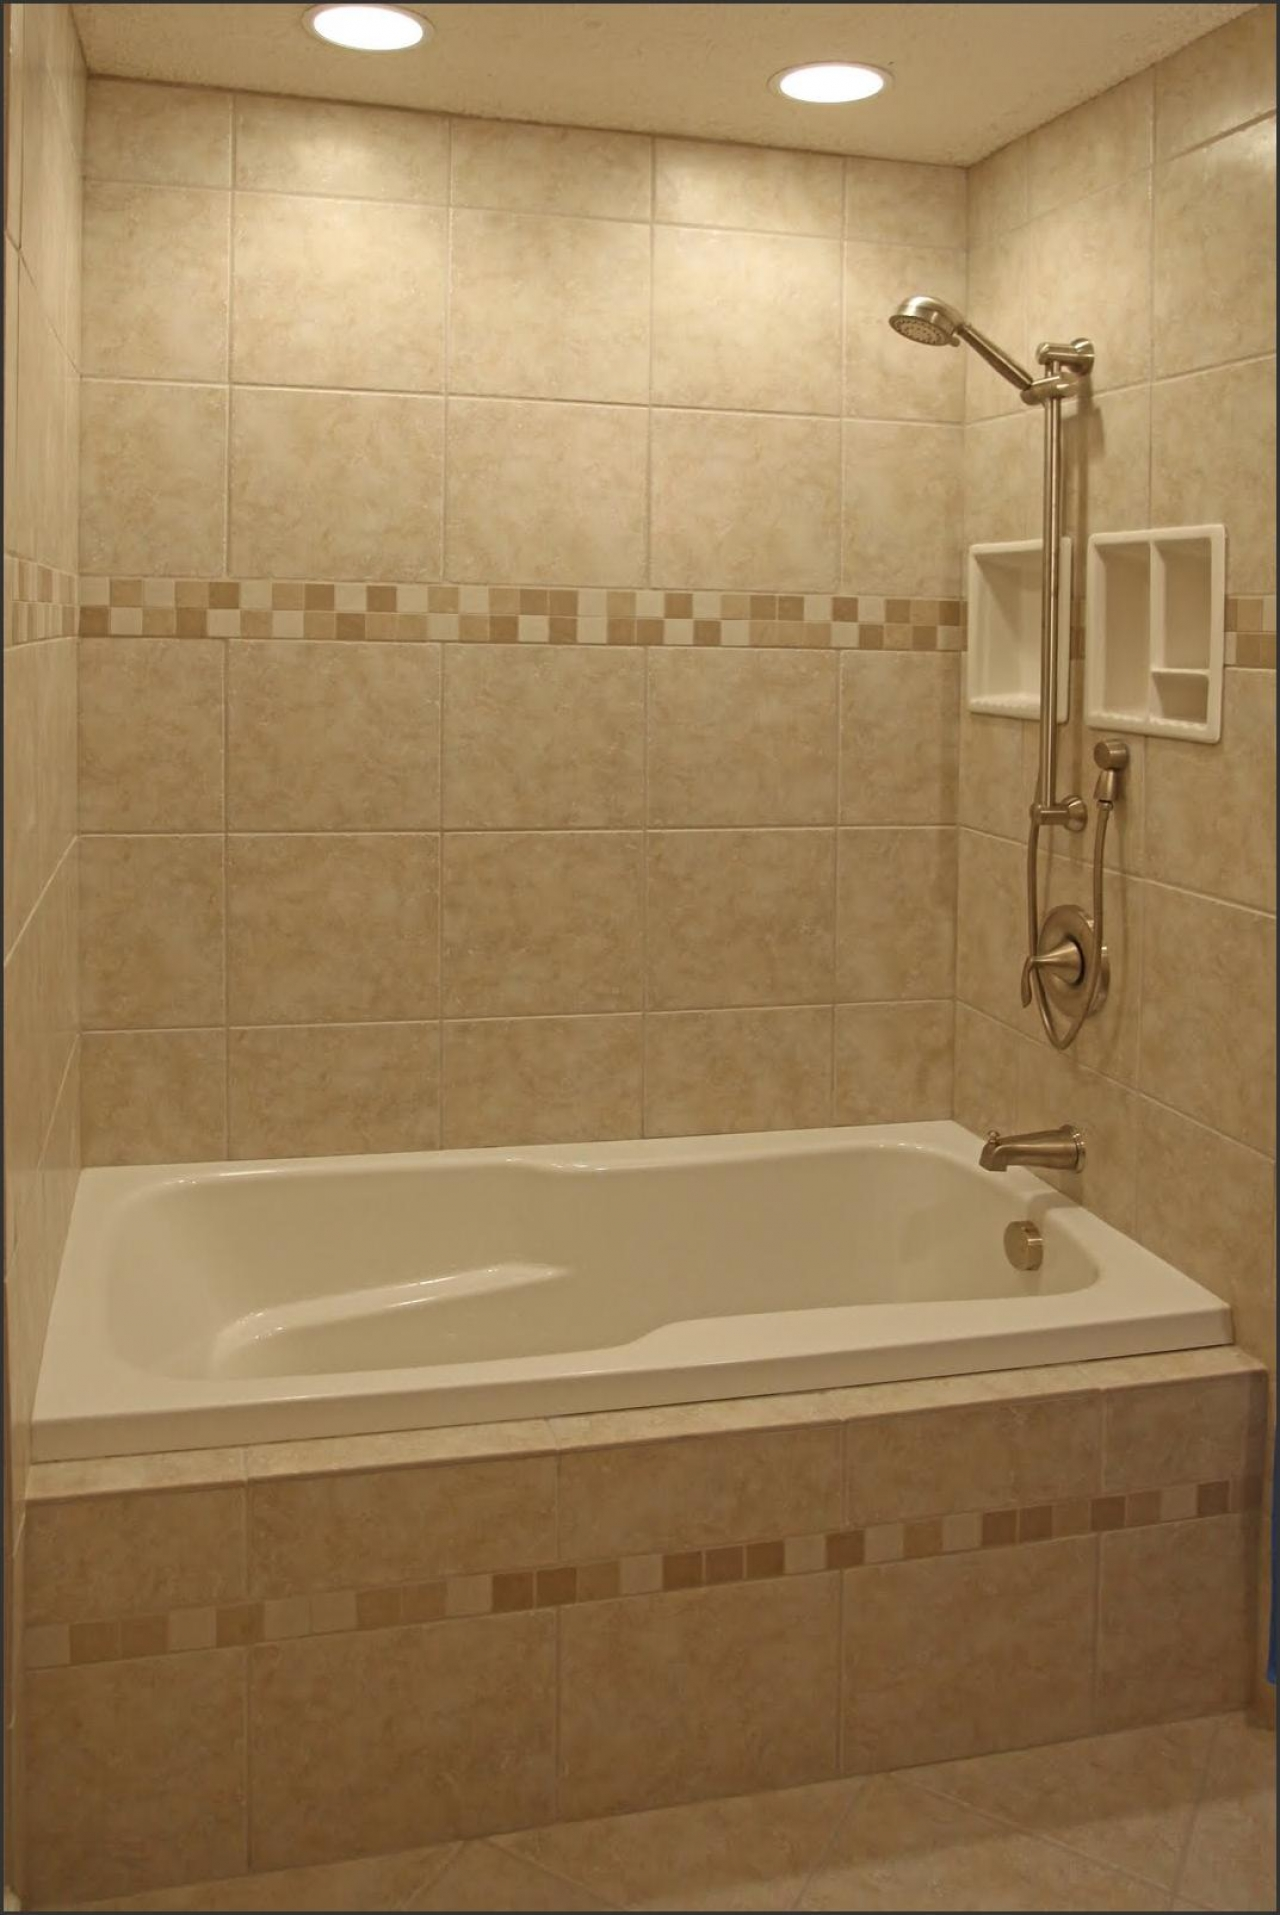 37 great ideas and pictures of modern small bathroom tiles for Images of bathroom tile ideas